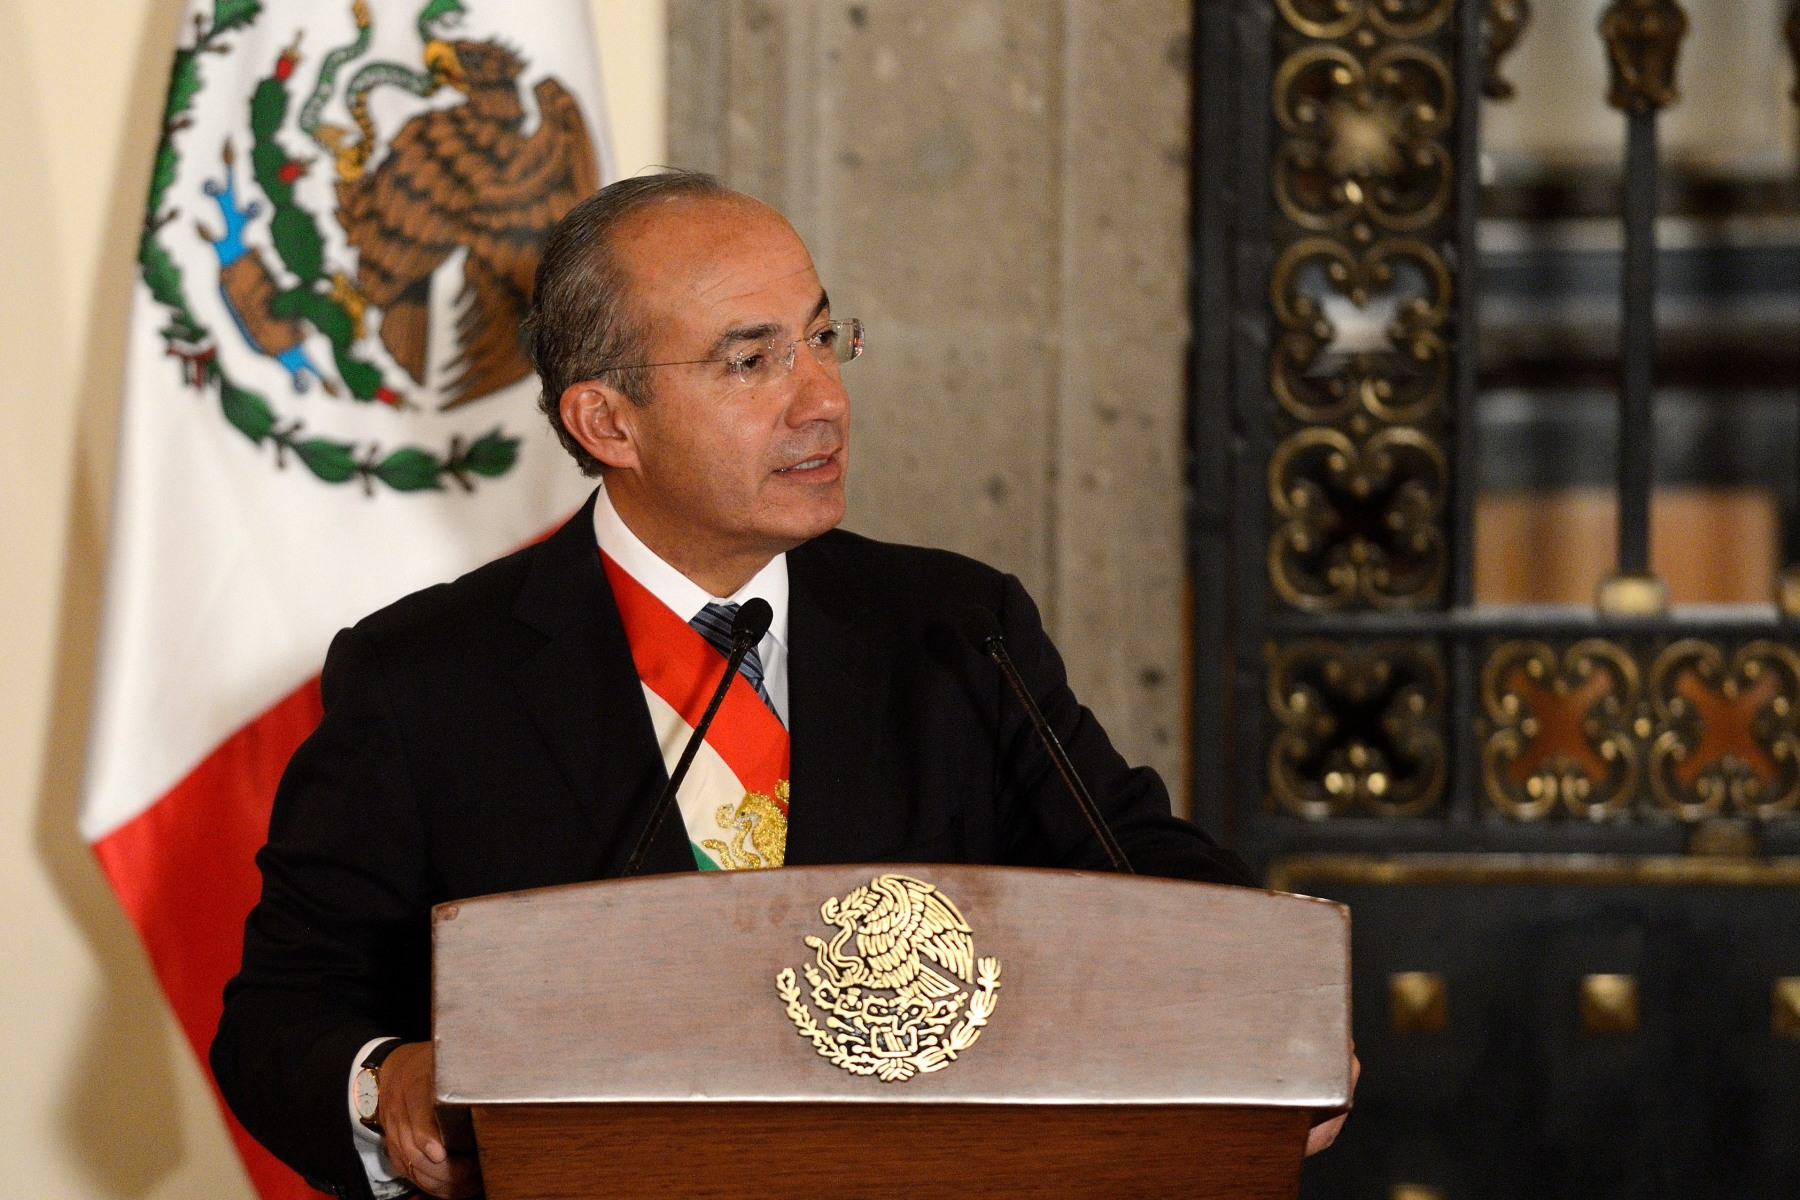 President Calderón gave a speech on the occasion of his last State Dinner as President of Mexico.